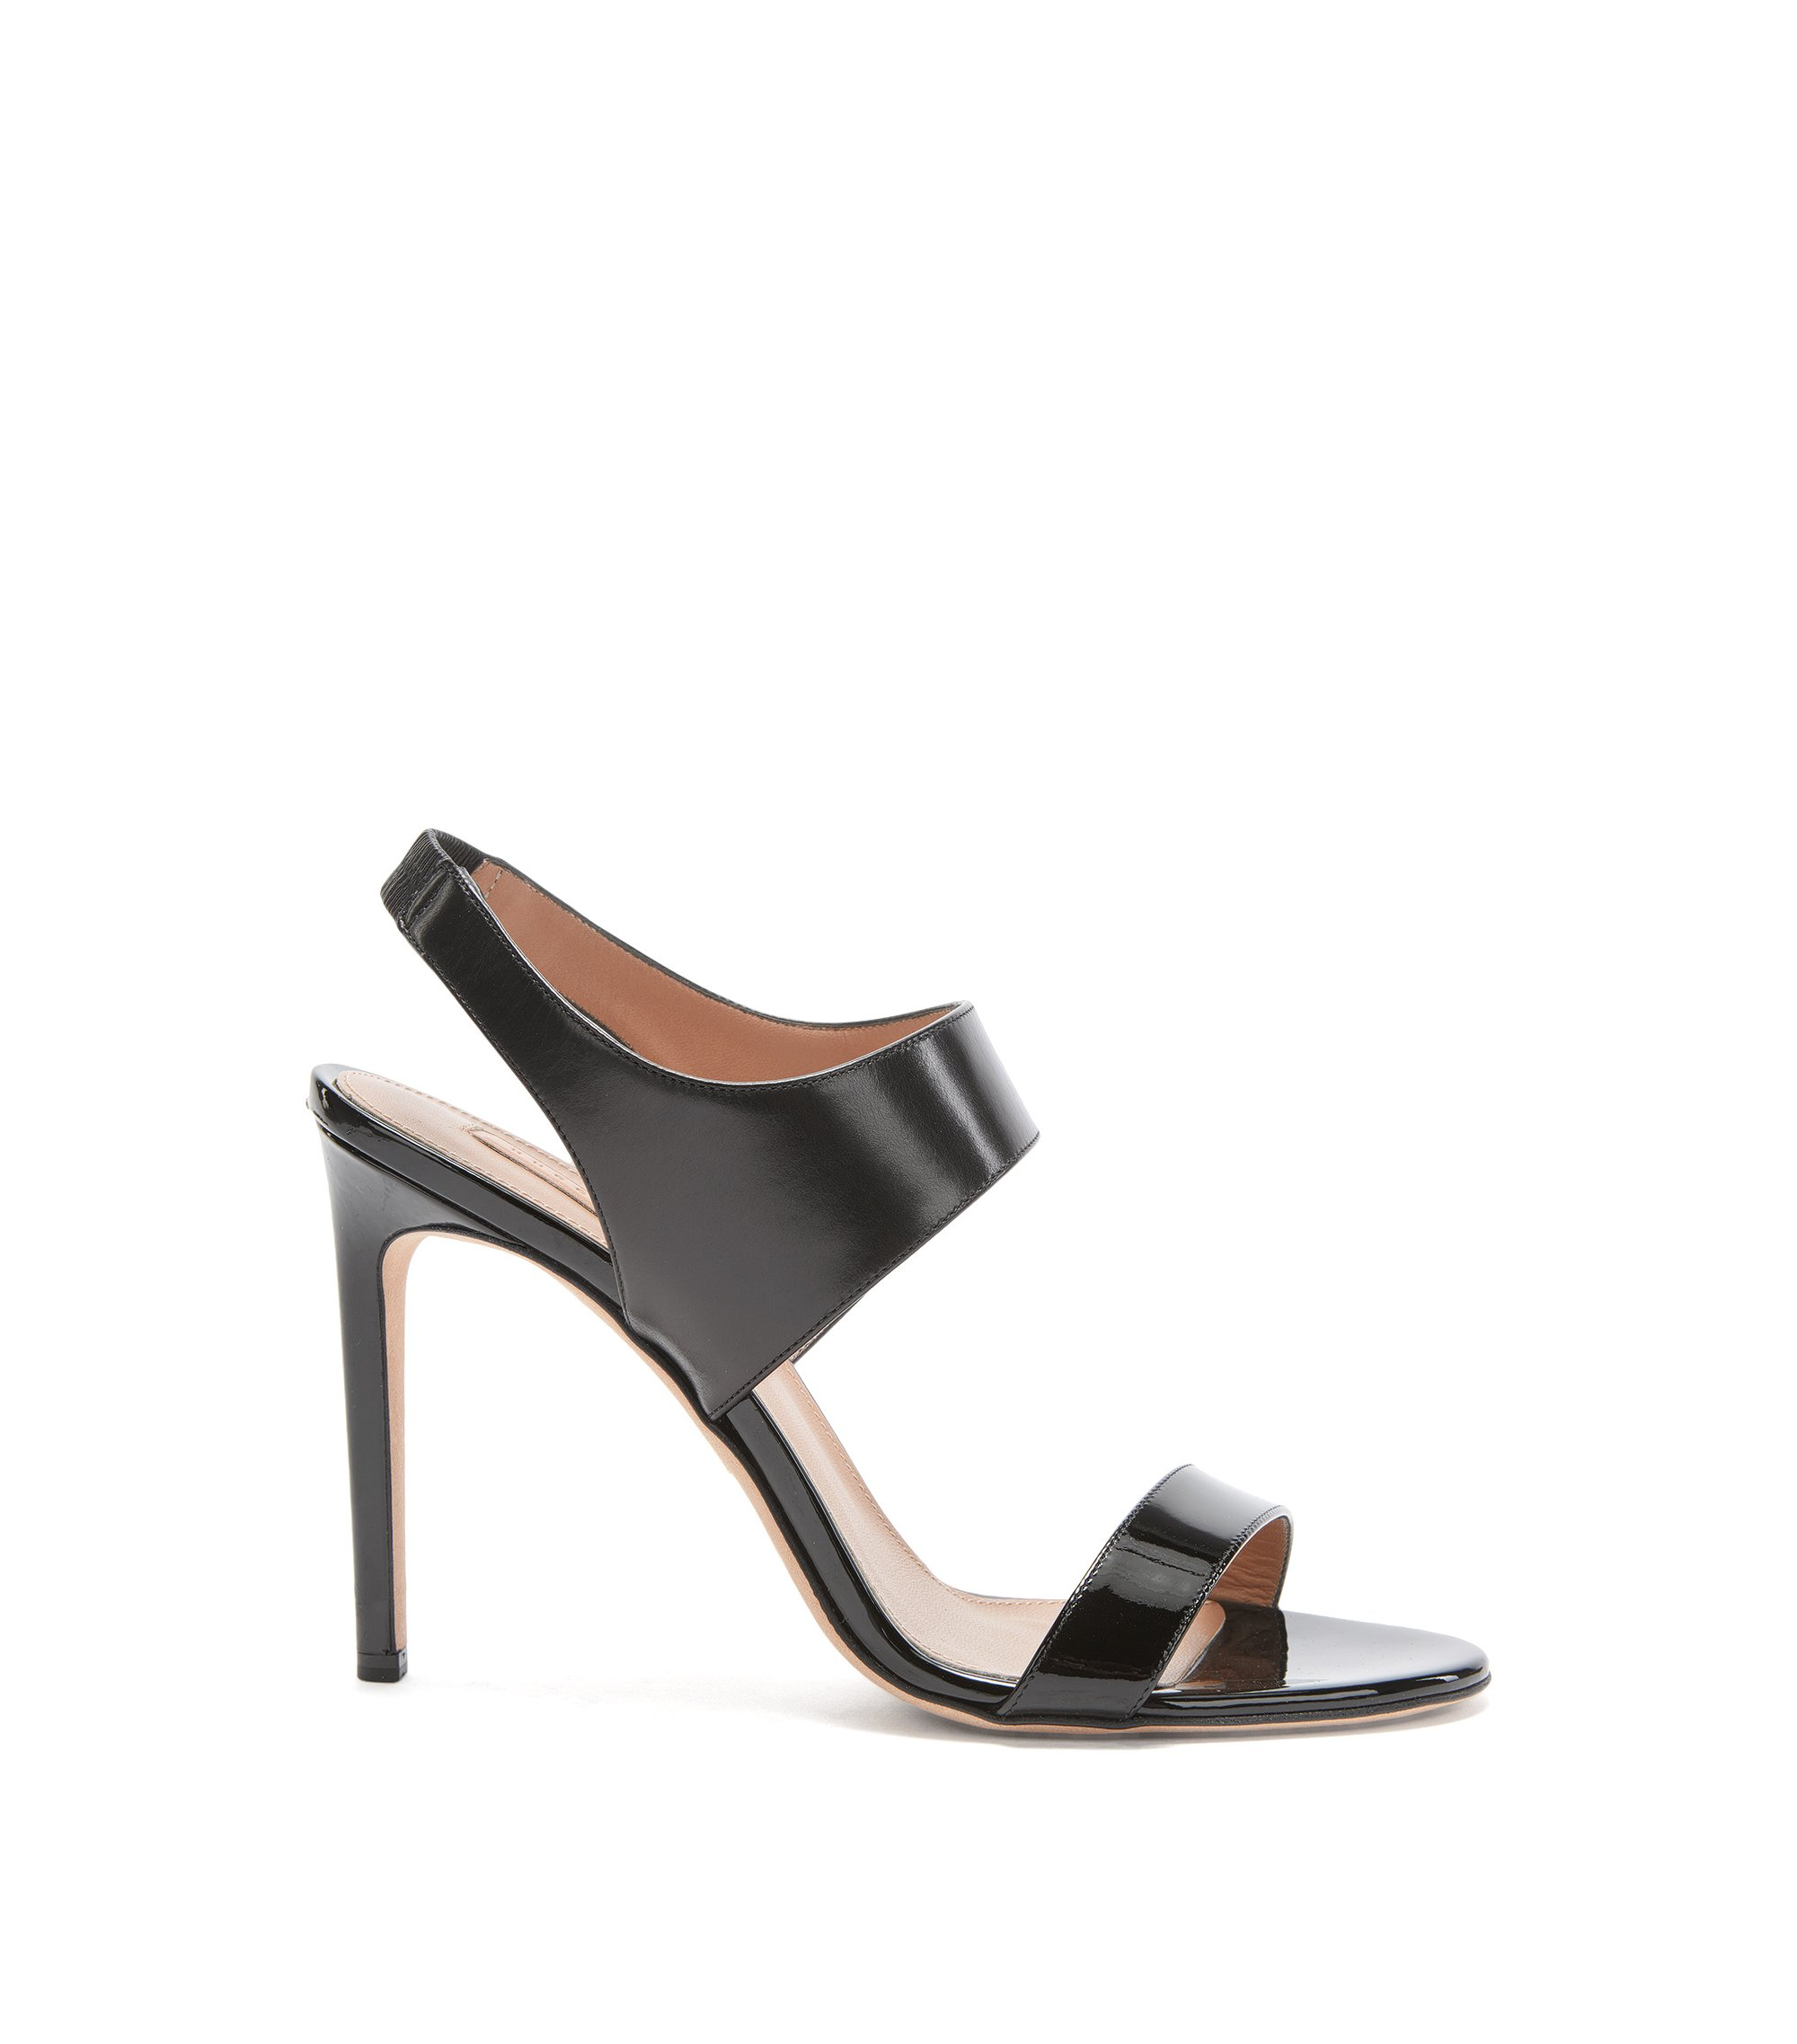 BOSS Luxury Staple sandals in rich Italian leather , Black